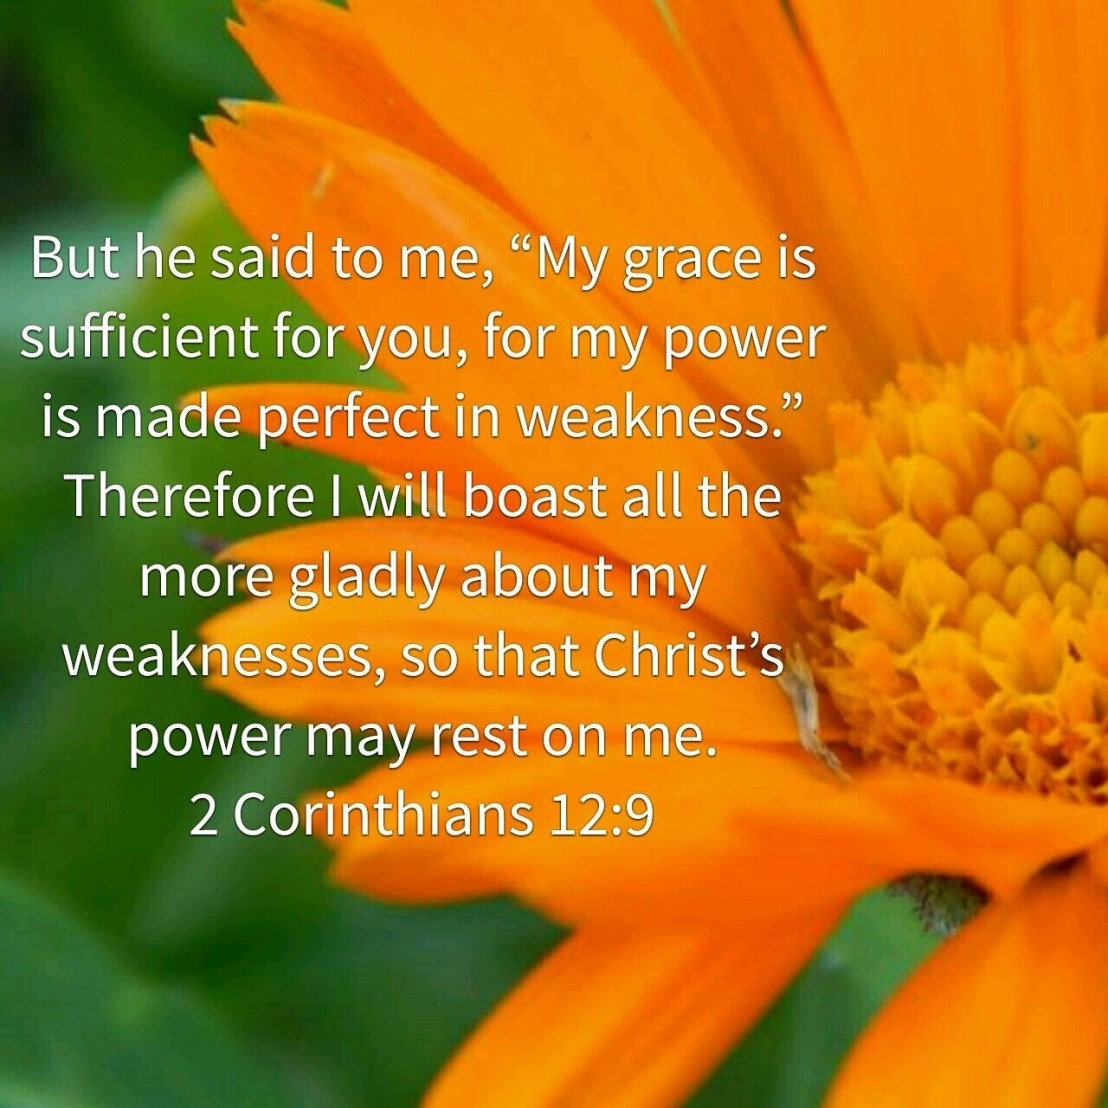 2 Corinthians 12:9 over large orange flower